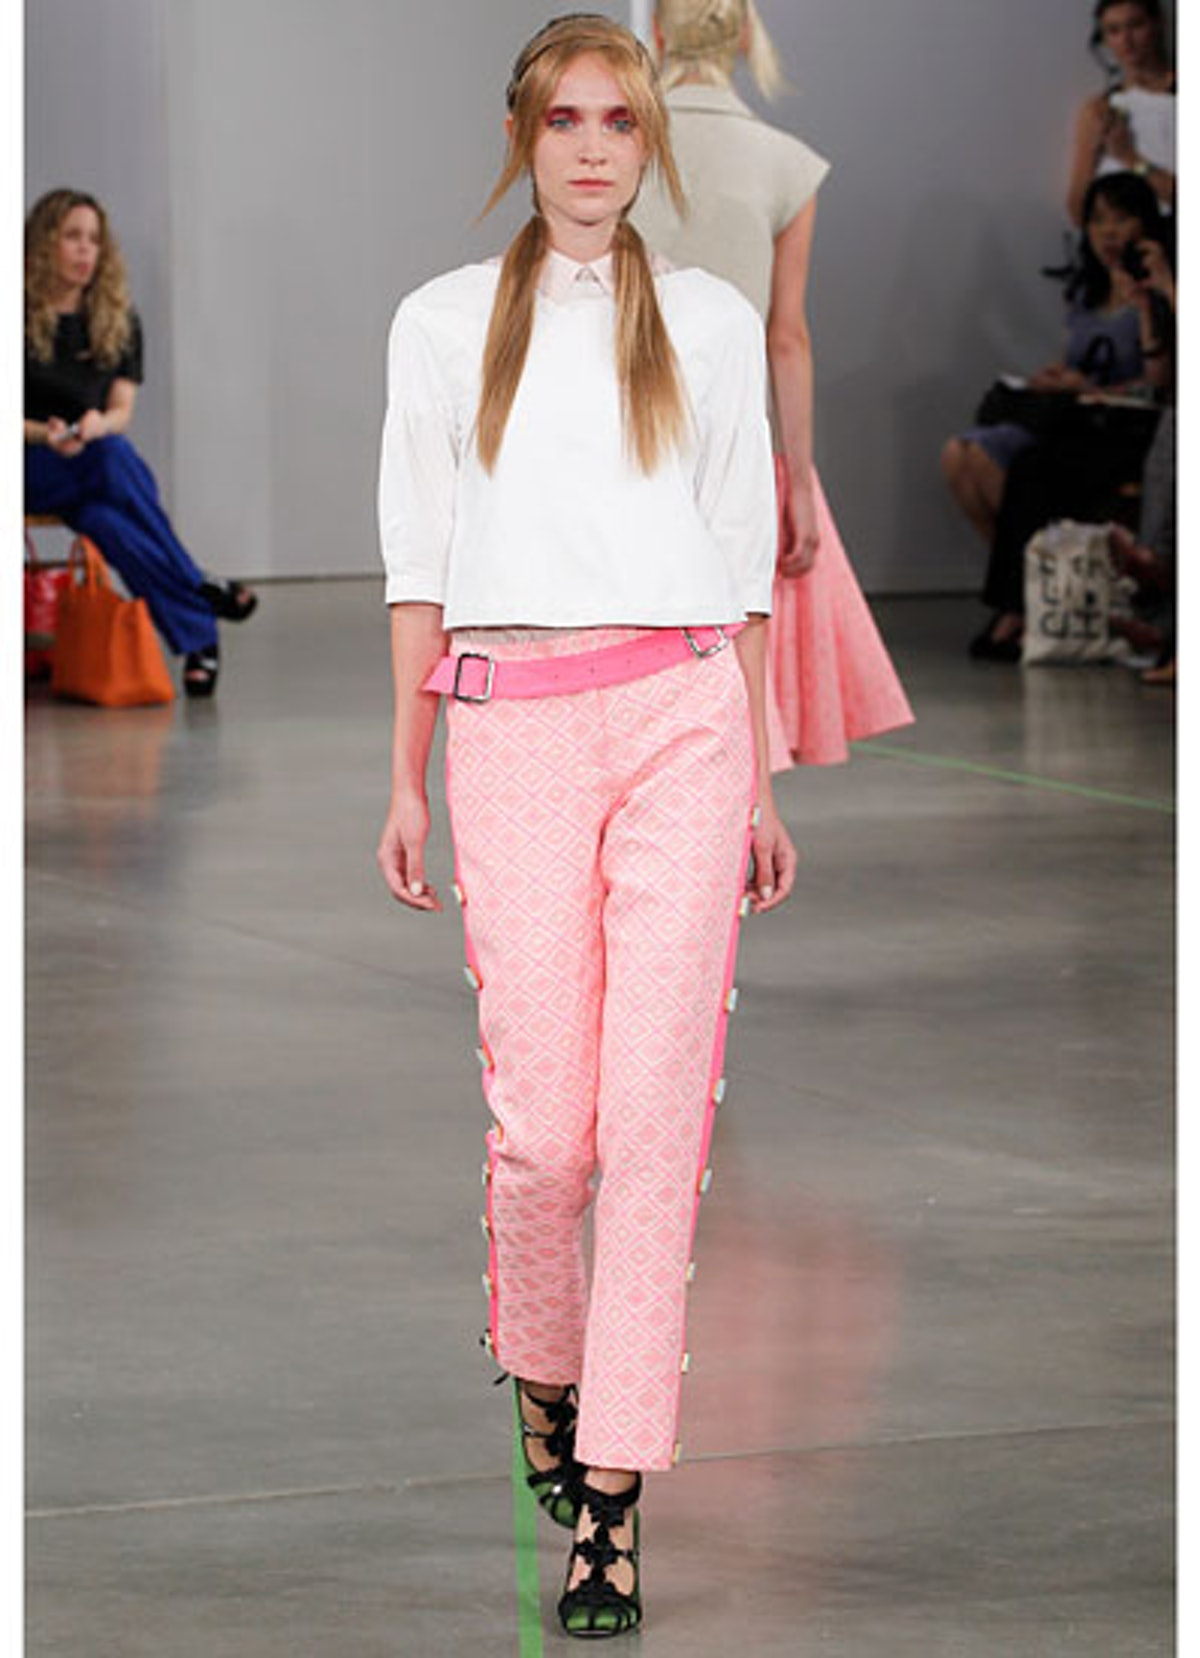 fass-creatures-of-the-wind-spring-2013-runway-13-v.jpg